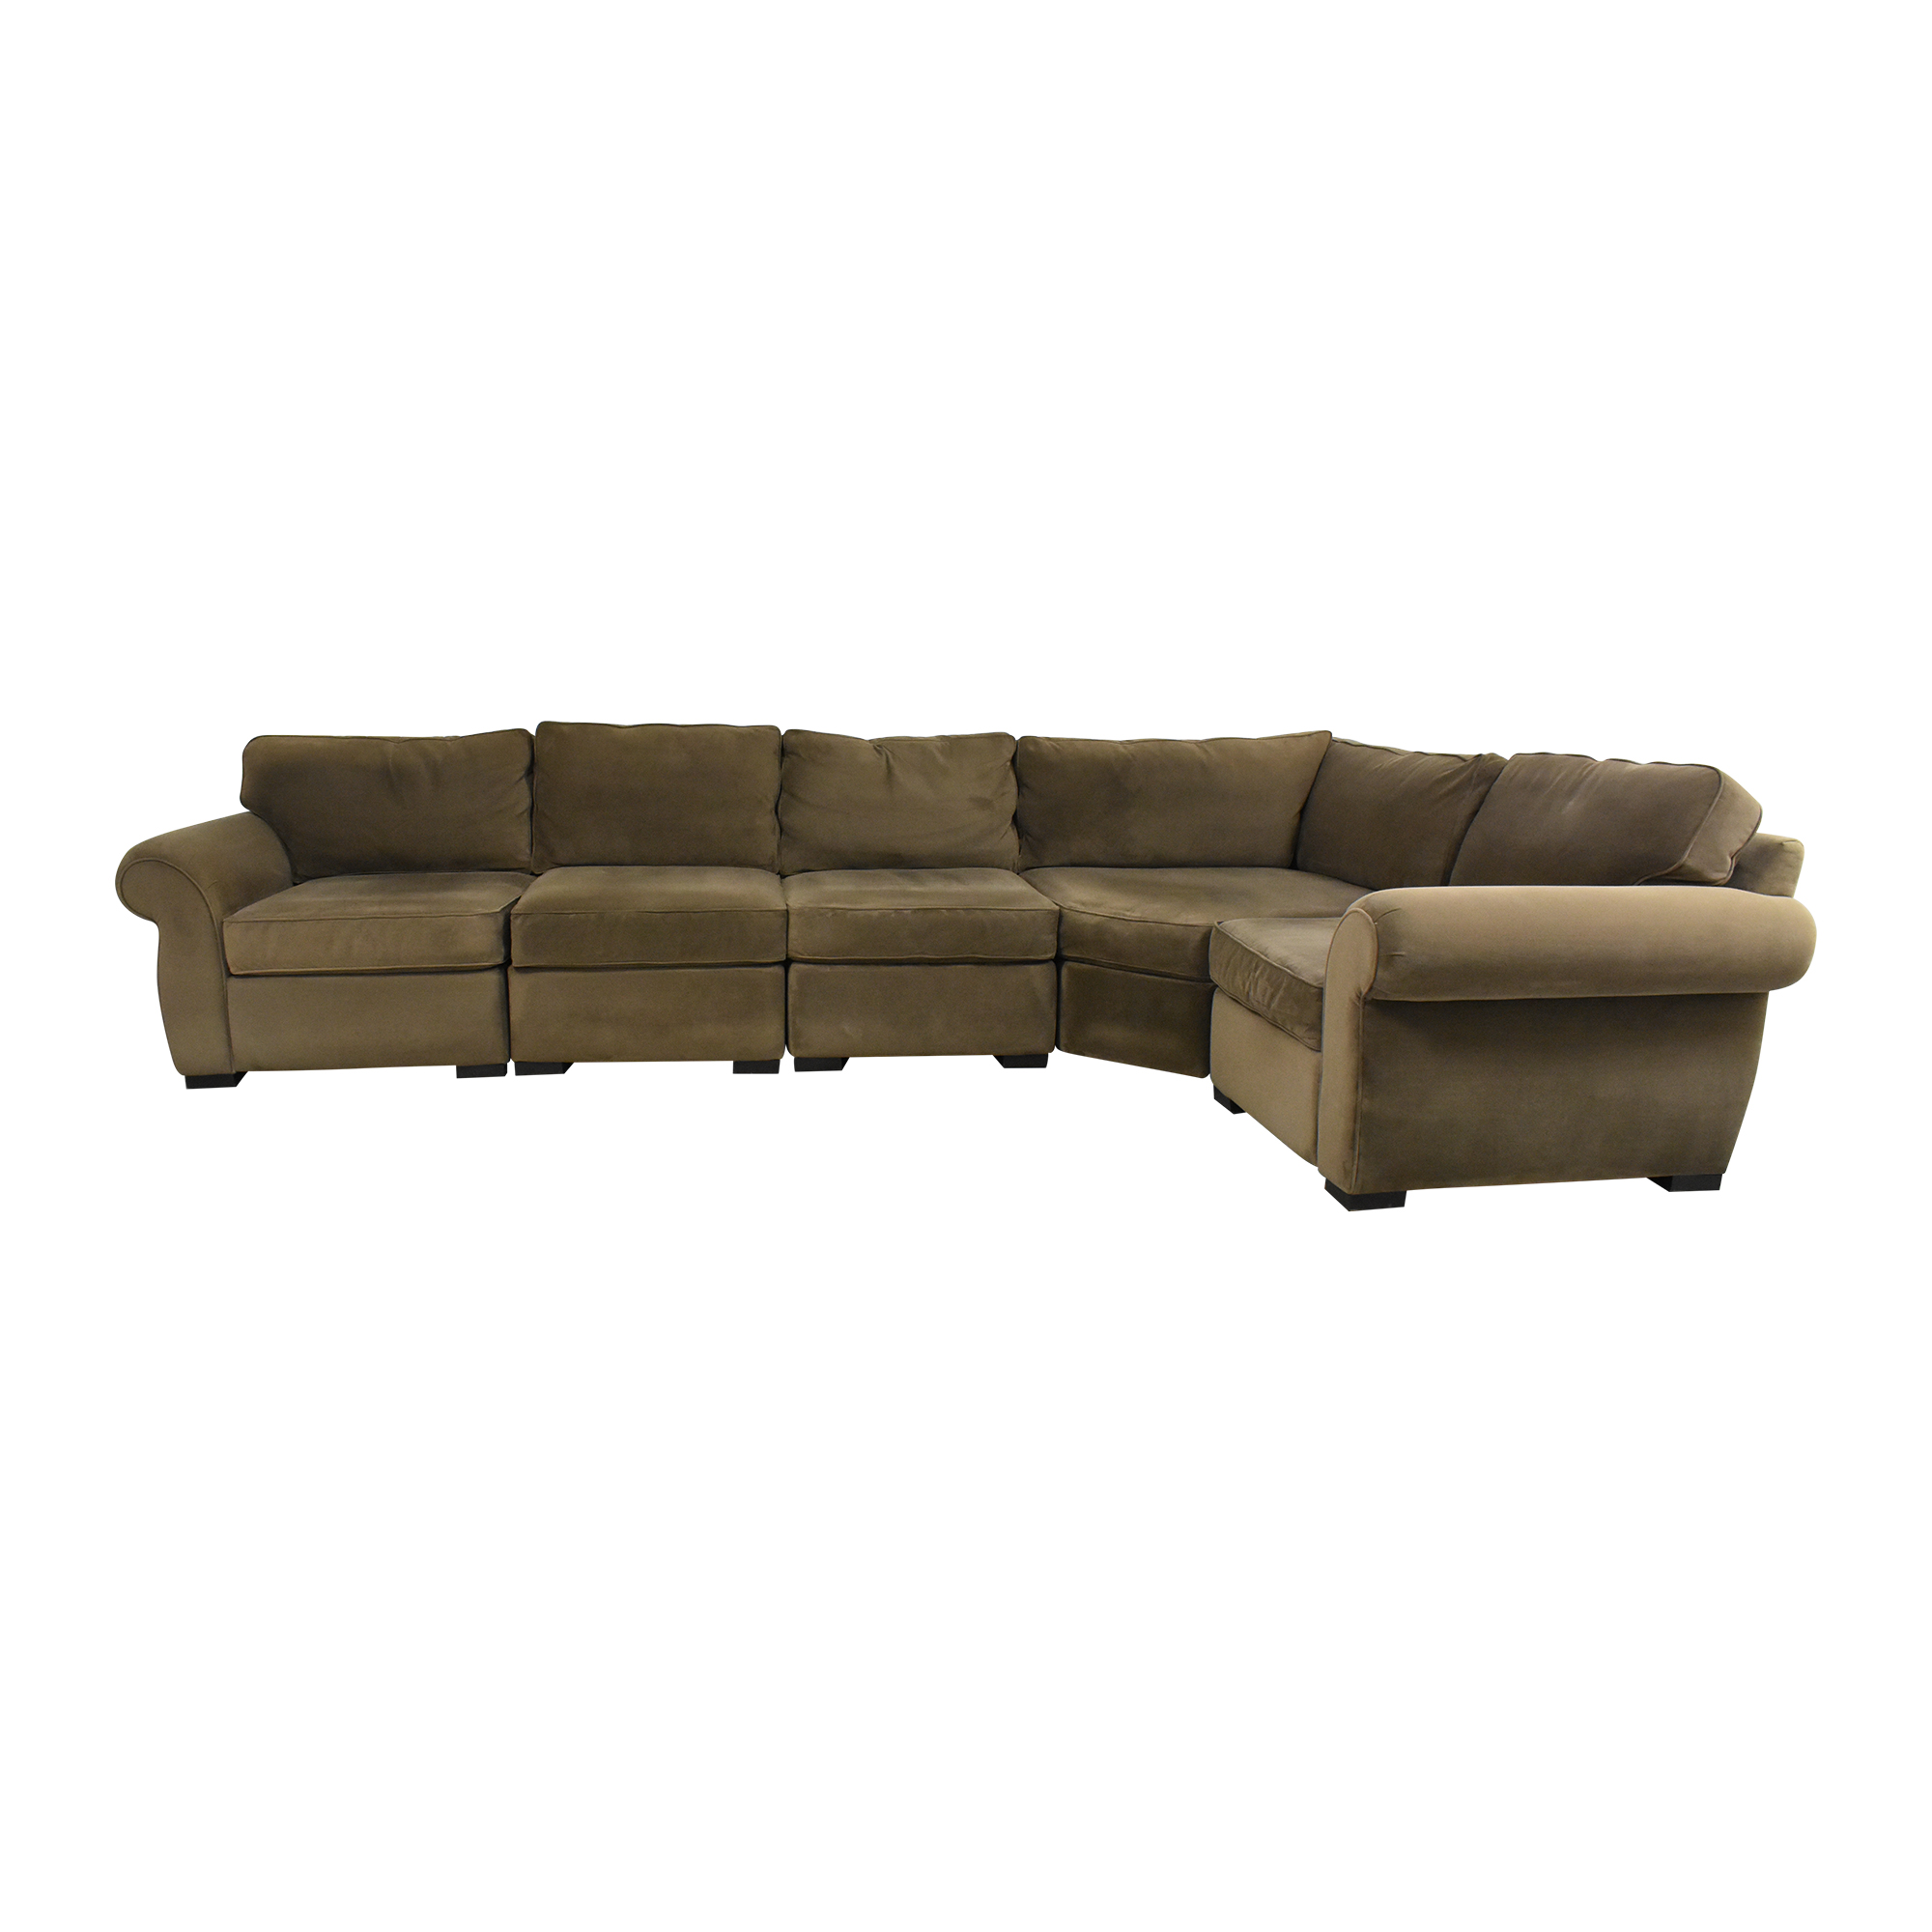 Macy's Macy's Trevor Five Piece Sectional Sofa nj